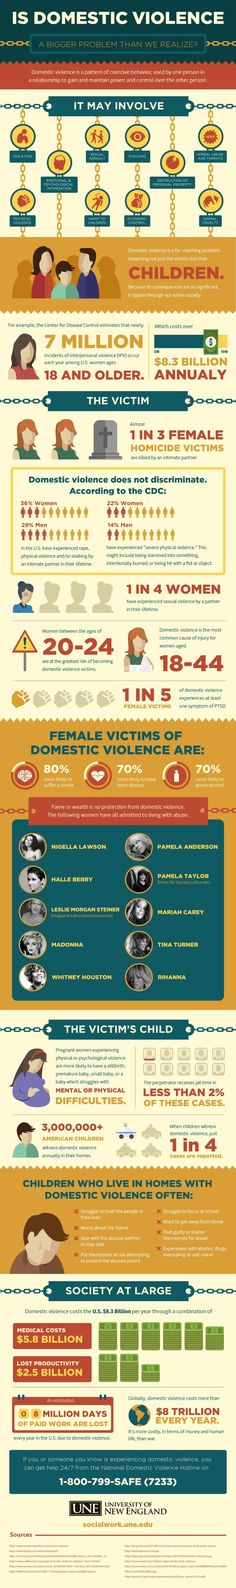 """""""Is Domestic Abuse a Bigger Problem than We Realize?"""" an incredibly insightful info graphic about domestic abuse"""